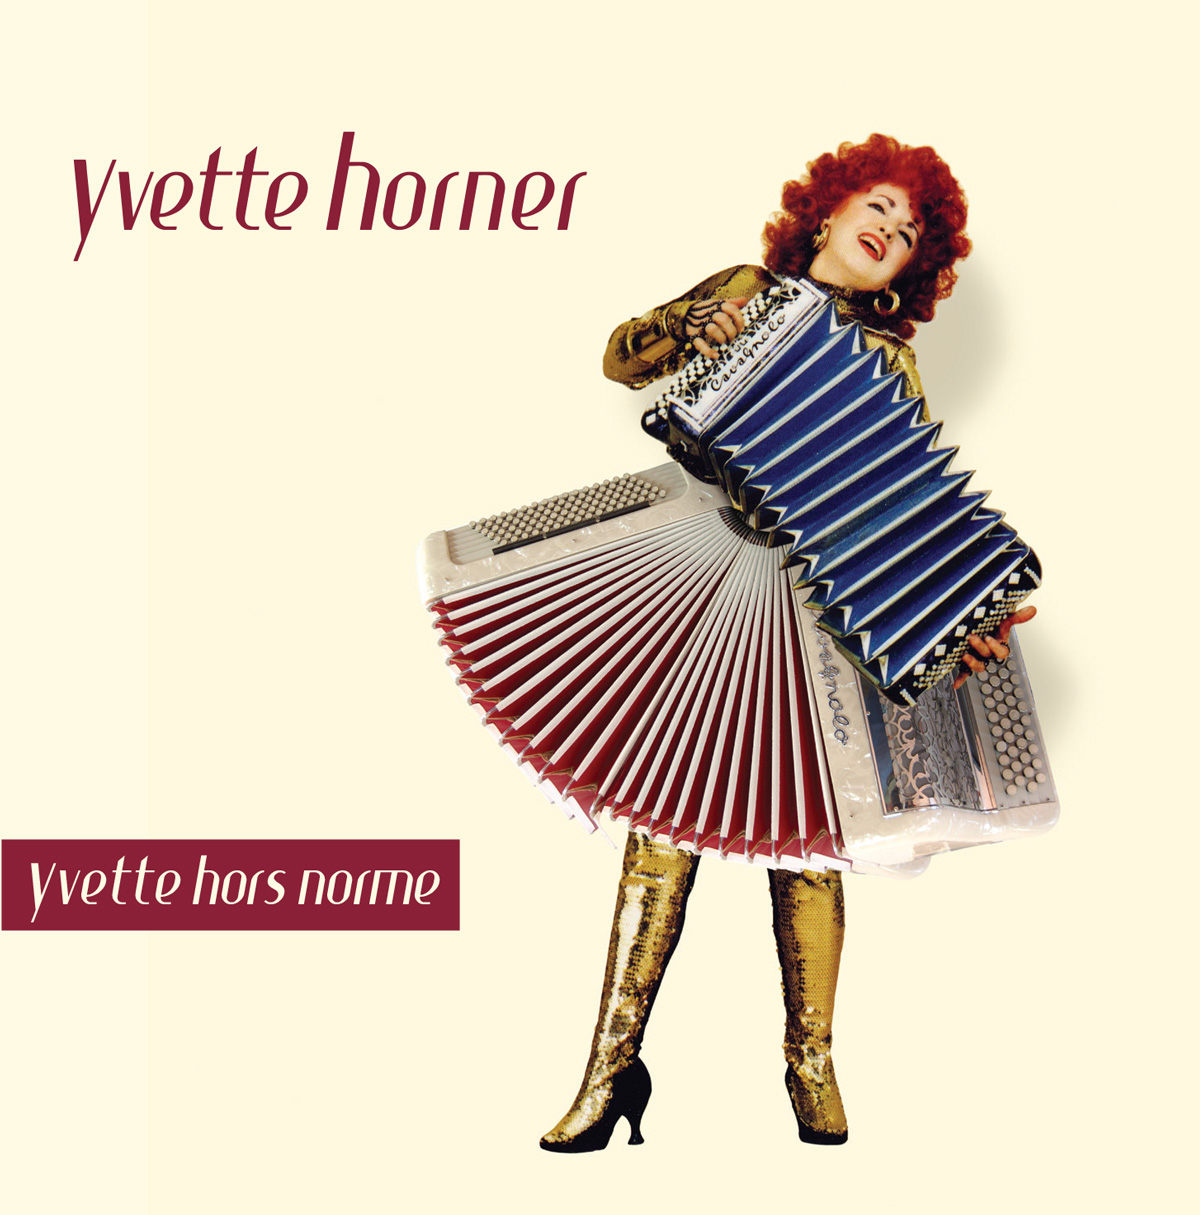 2012 Yvette Horner - Yvette Hors Norme - Single Remix by Maximus - Composition, production